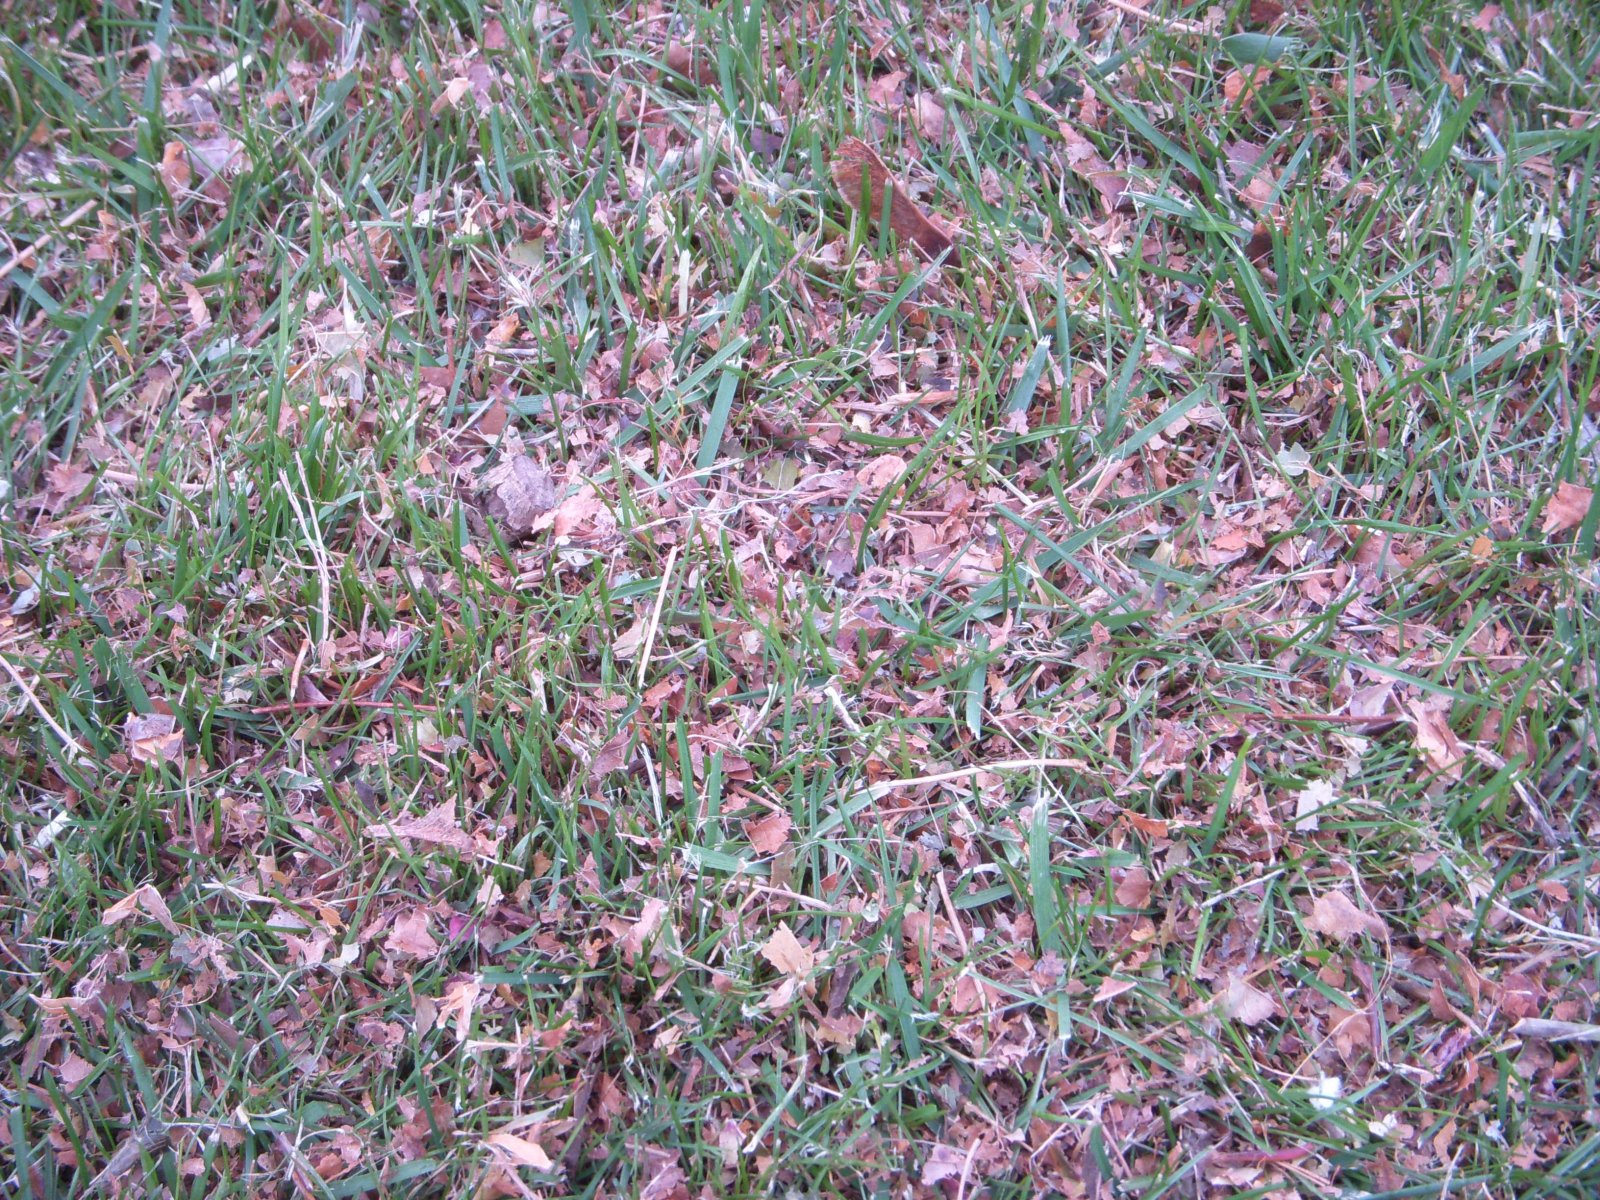 mulch shred leaves on new young grass lawn (5).JPG